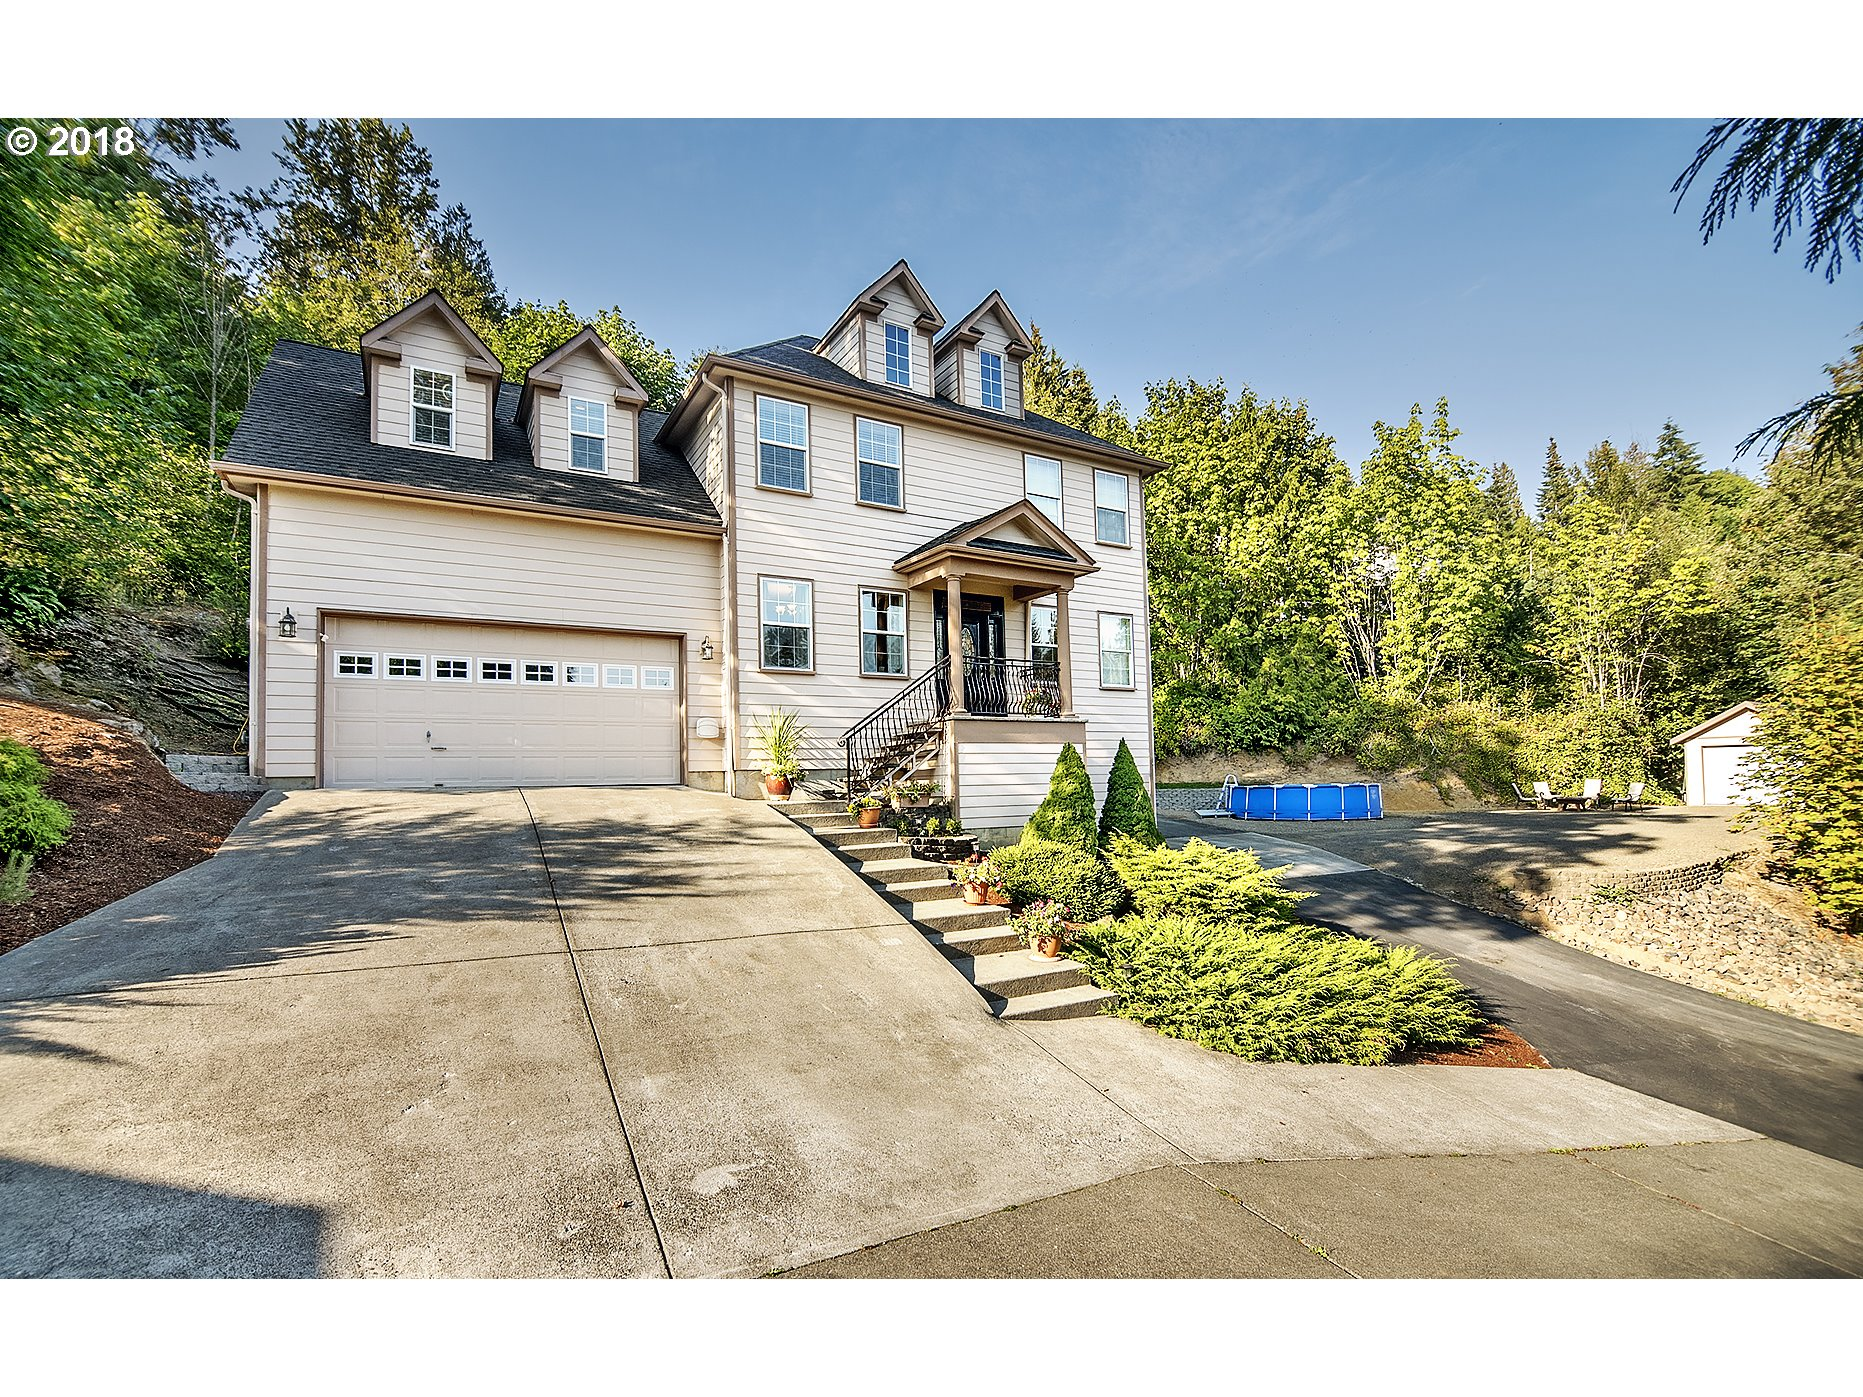 Longview Wa Homes And Real Estate For Sale Real Estate Brokers For